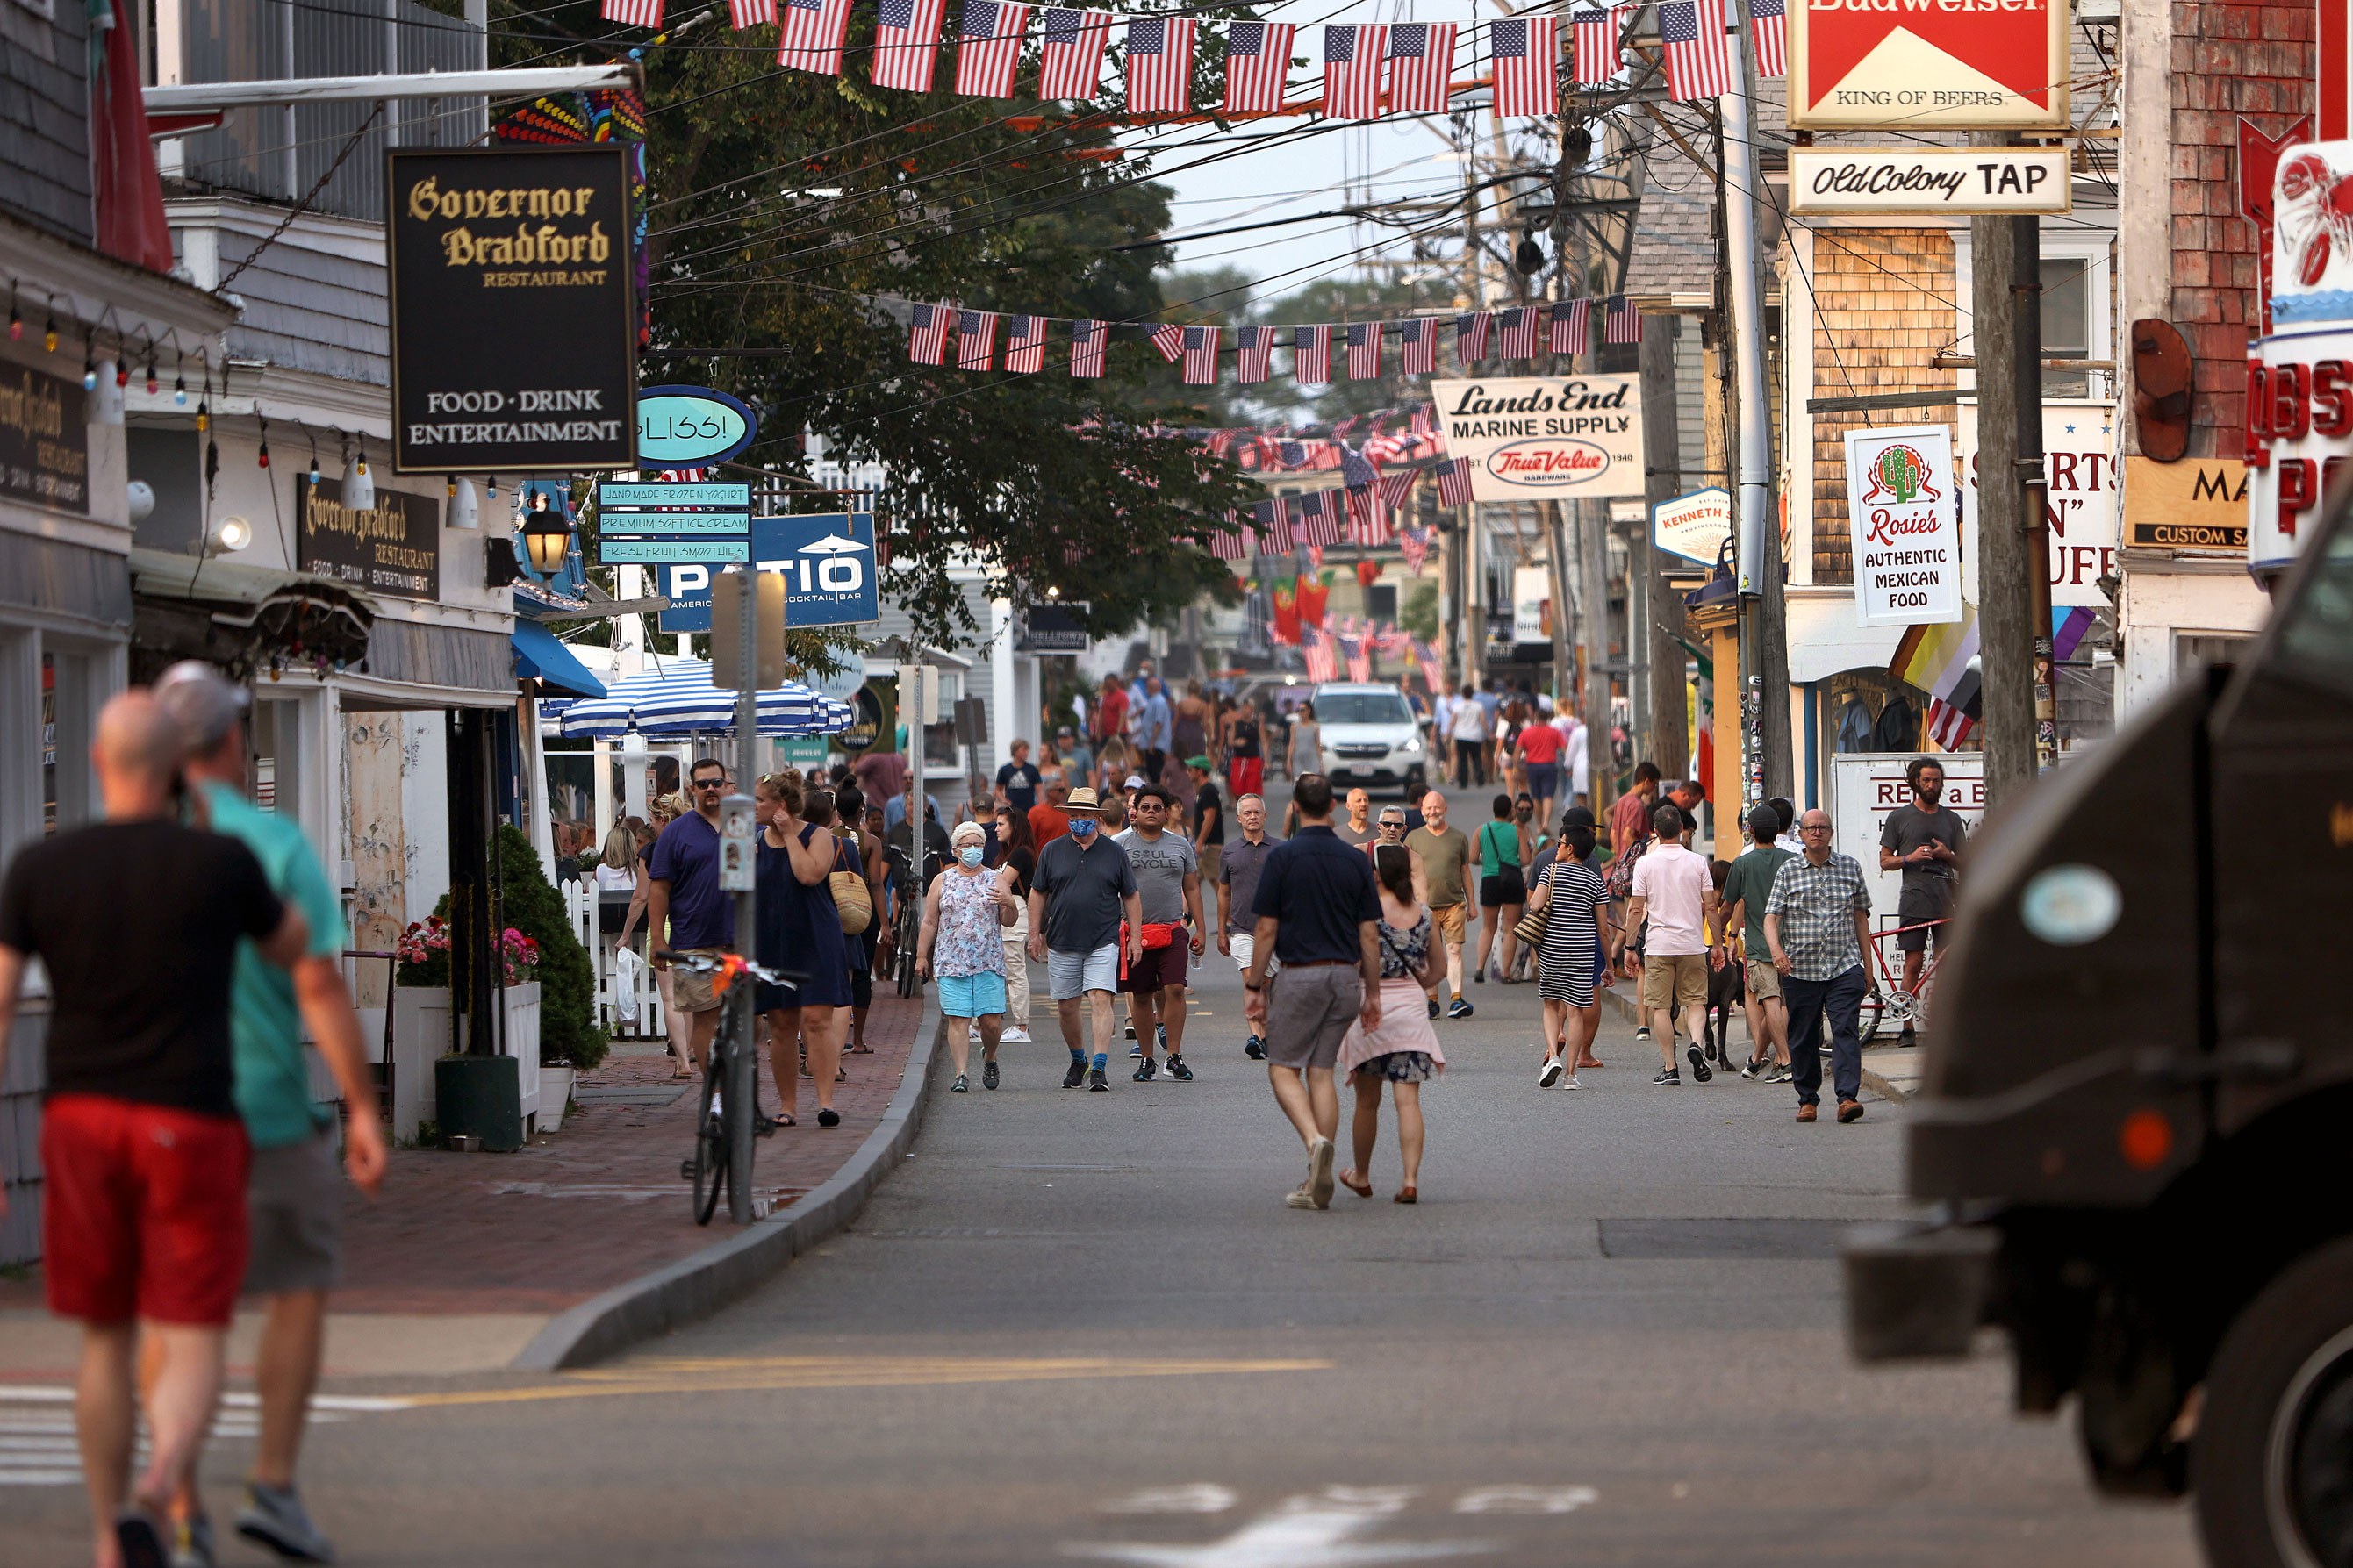 Foot traffic along Commercial street in Provincetown, Massachusetts on Tuesday, July 20.